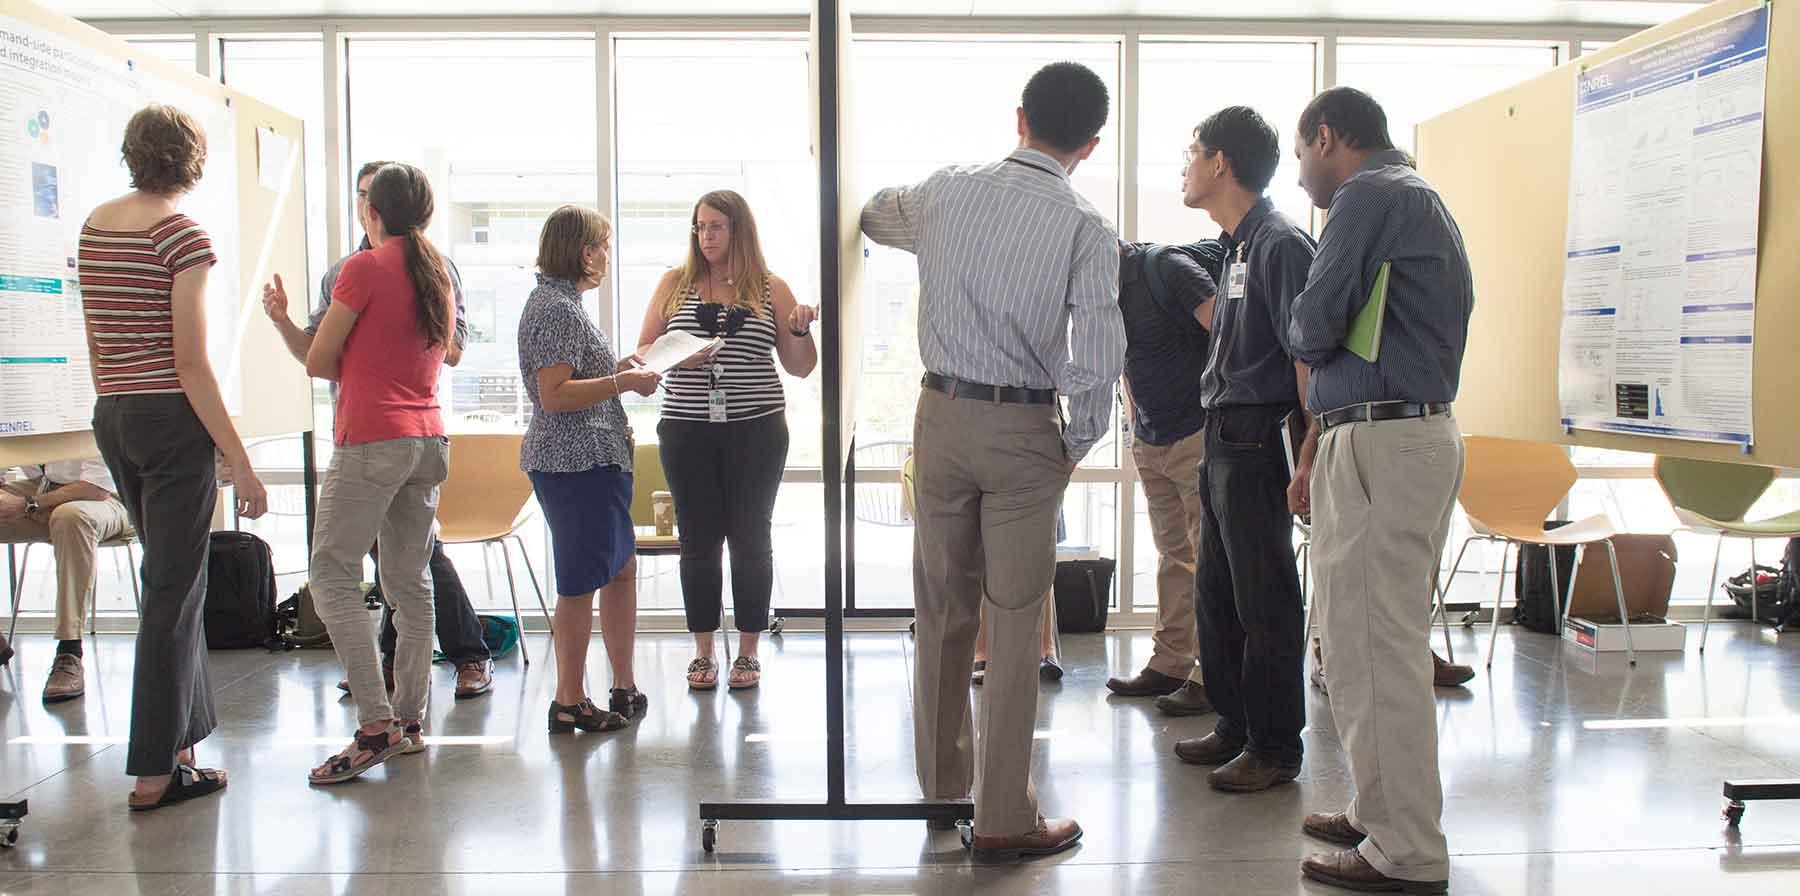 A group of people examine posters displaying results of LDRD-funded research.